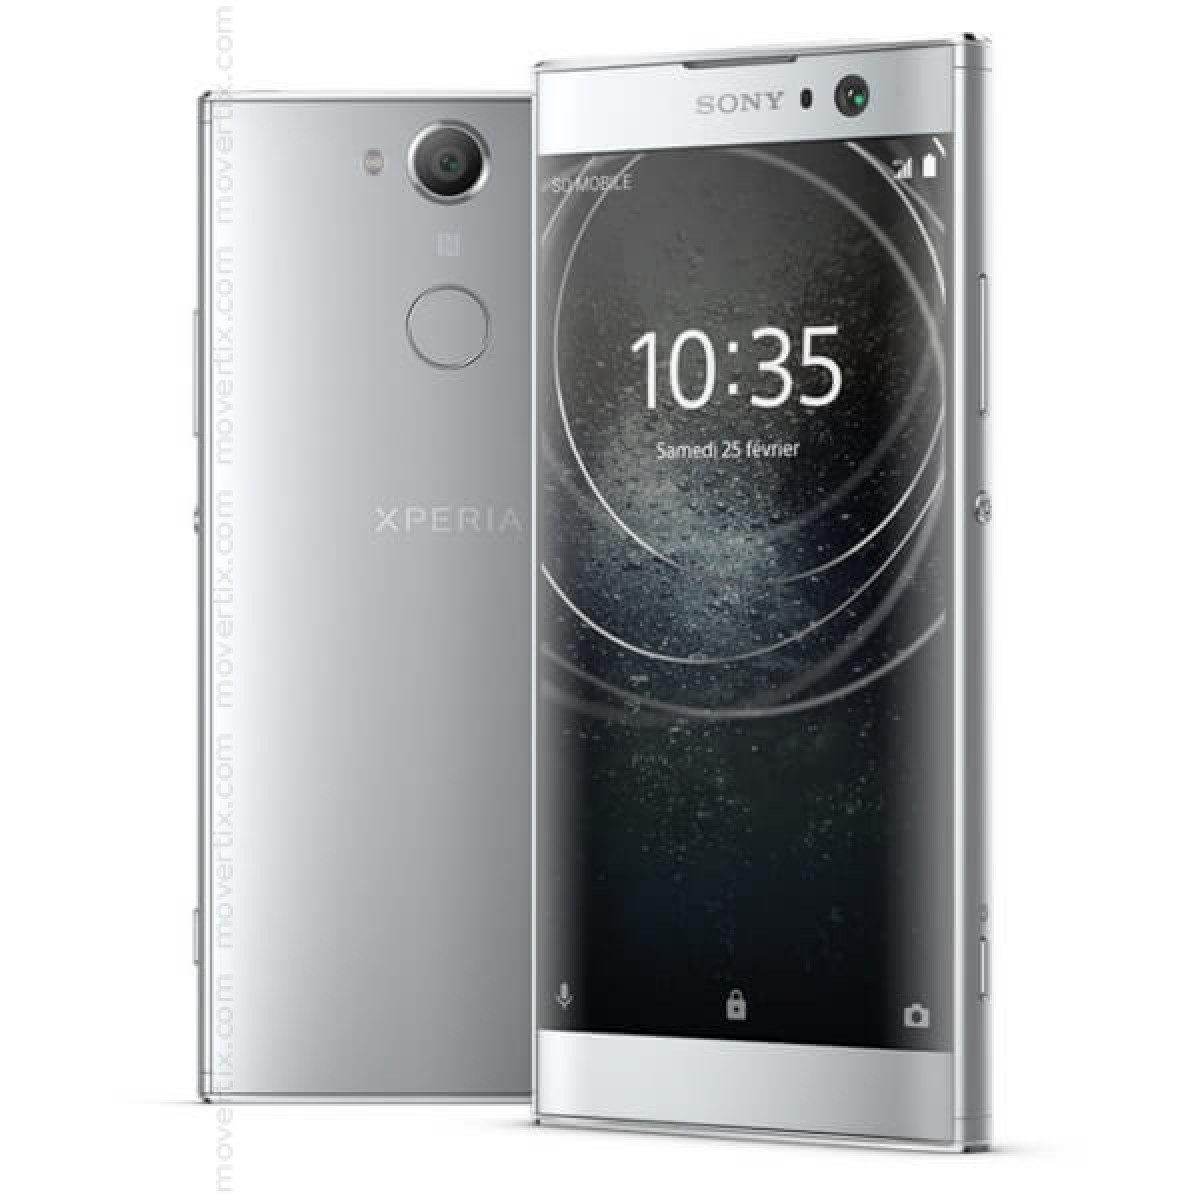 Sony Xperia Xa2 In Silber H3113 7311271605454 Movertix Handy Shop